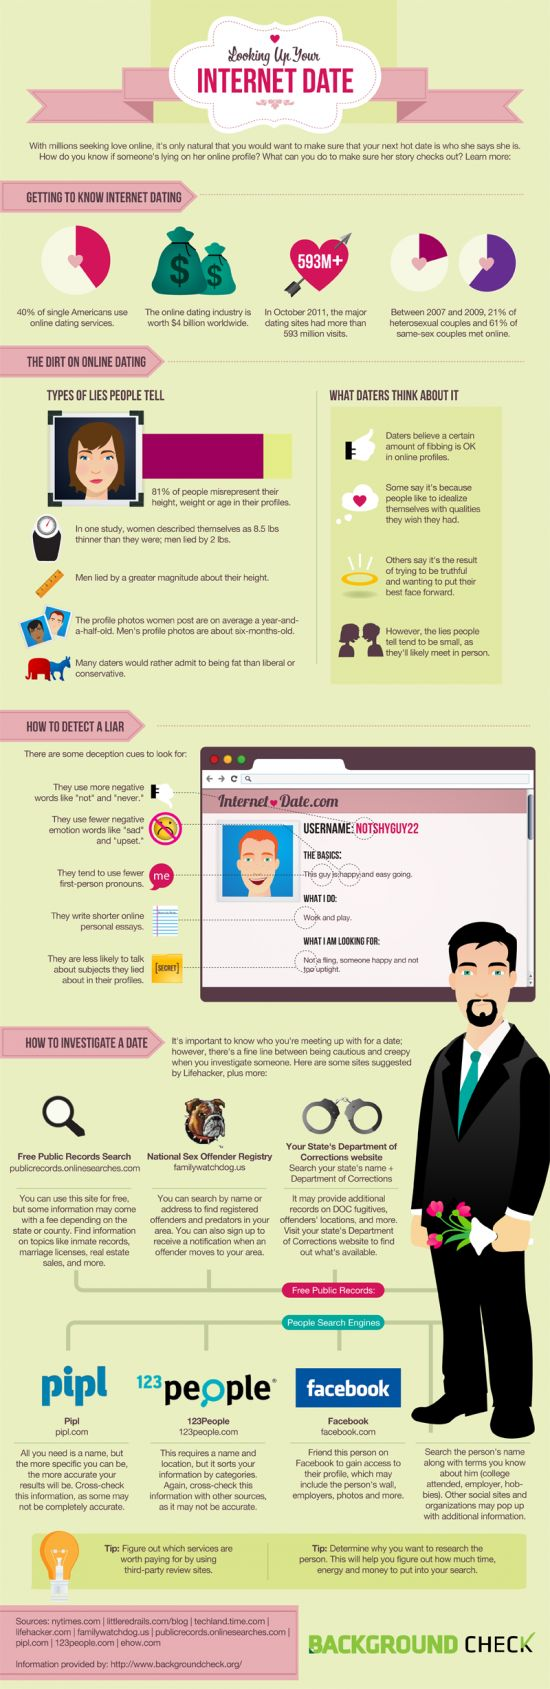 free background check internet dating